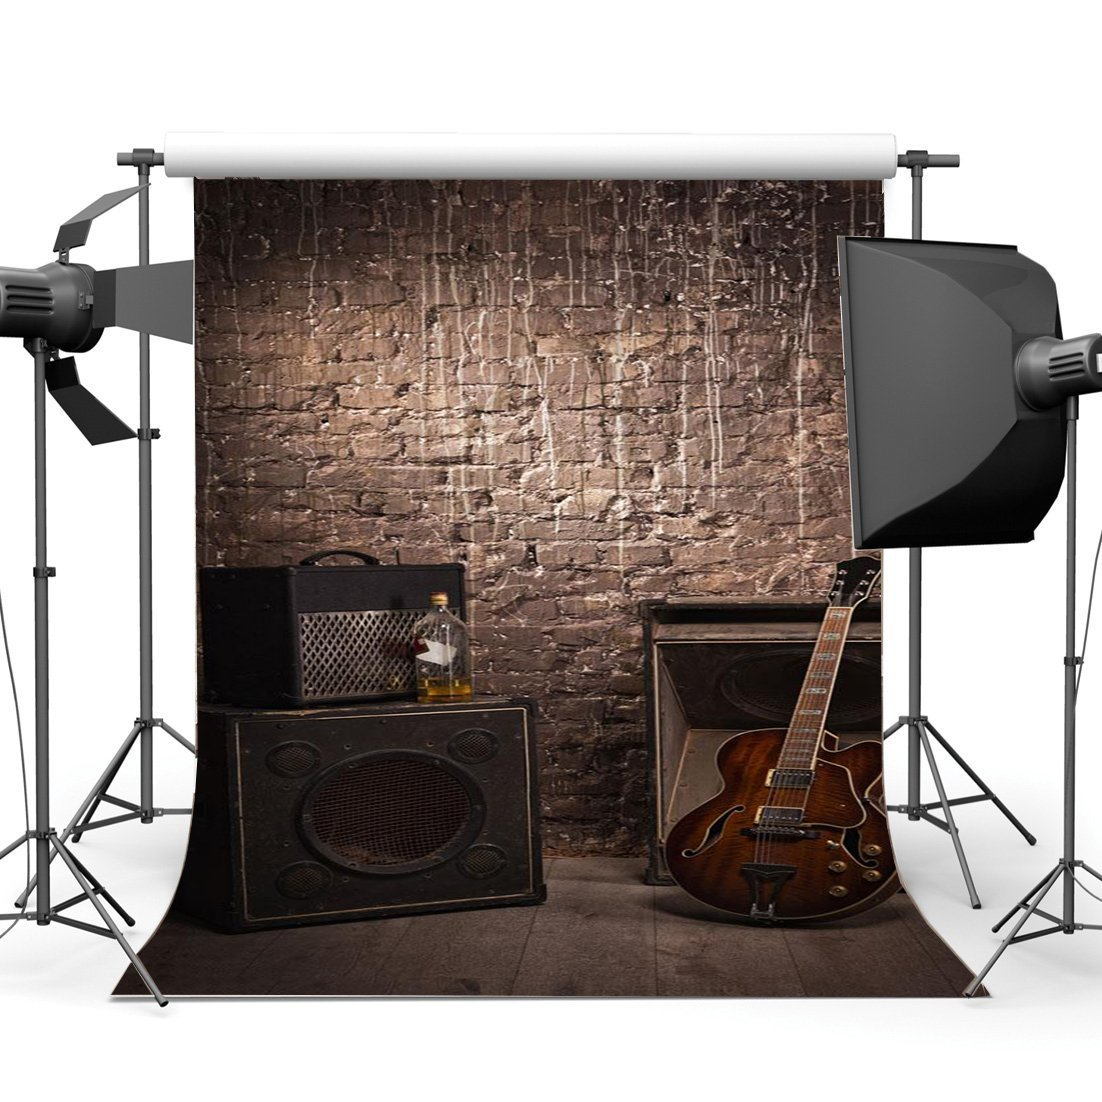 Shabby Guitar Band Concert Backdrop Hip Hop Grunge Brick Wall Gloomy Stripes Wood Floor West Background-in Photo Studio Accessories from Consumer Electronics